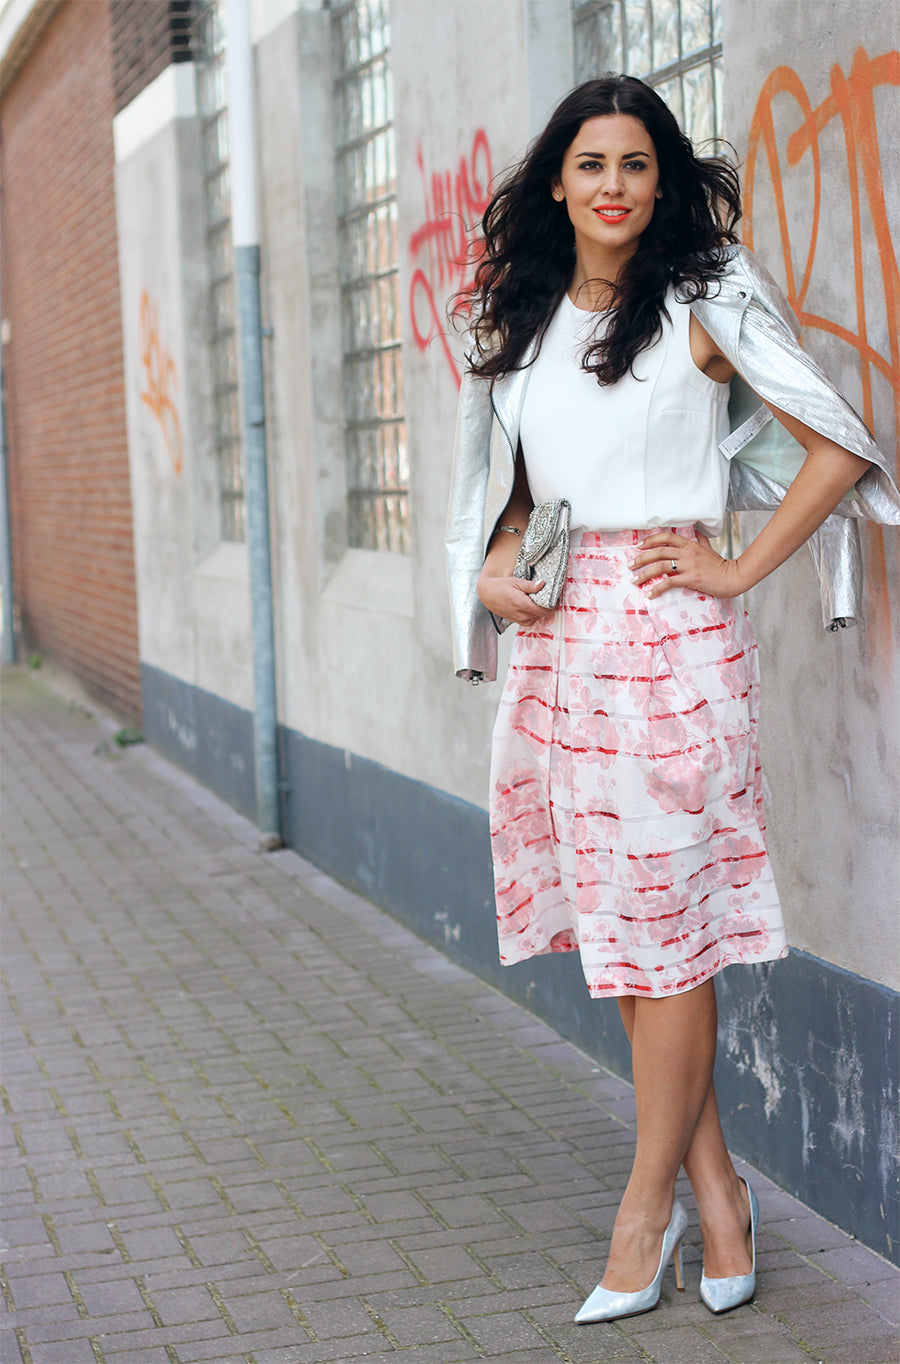 The Midi Skirt - How to Wear it according to The Fashion Container's Malena Permentier